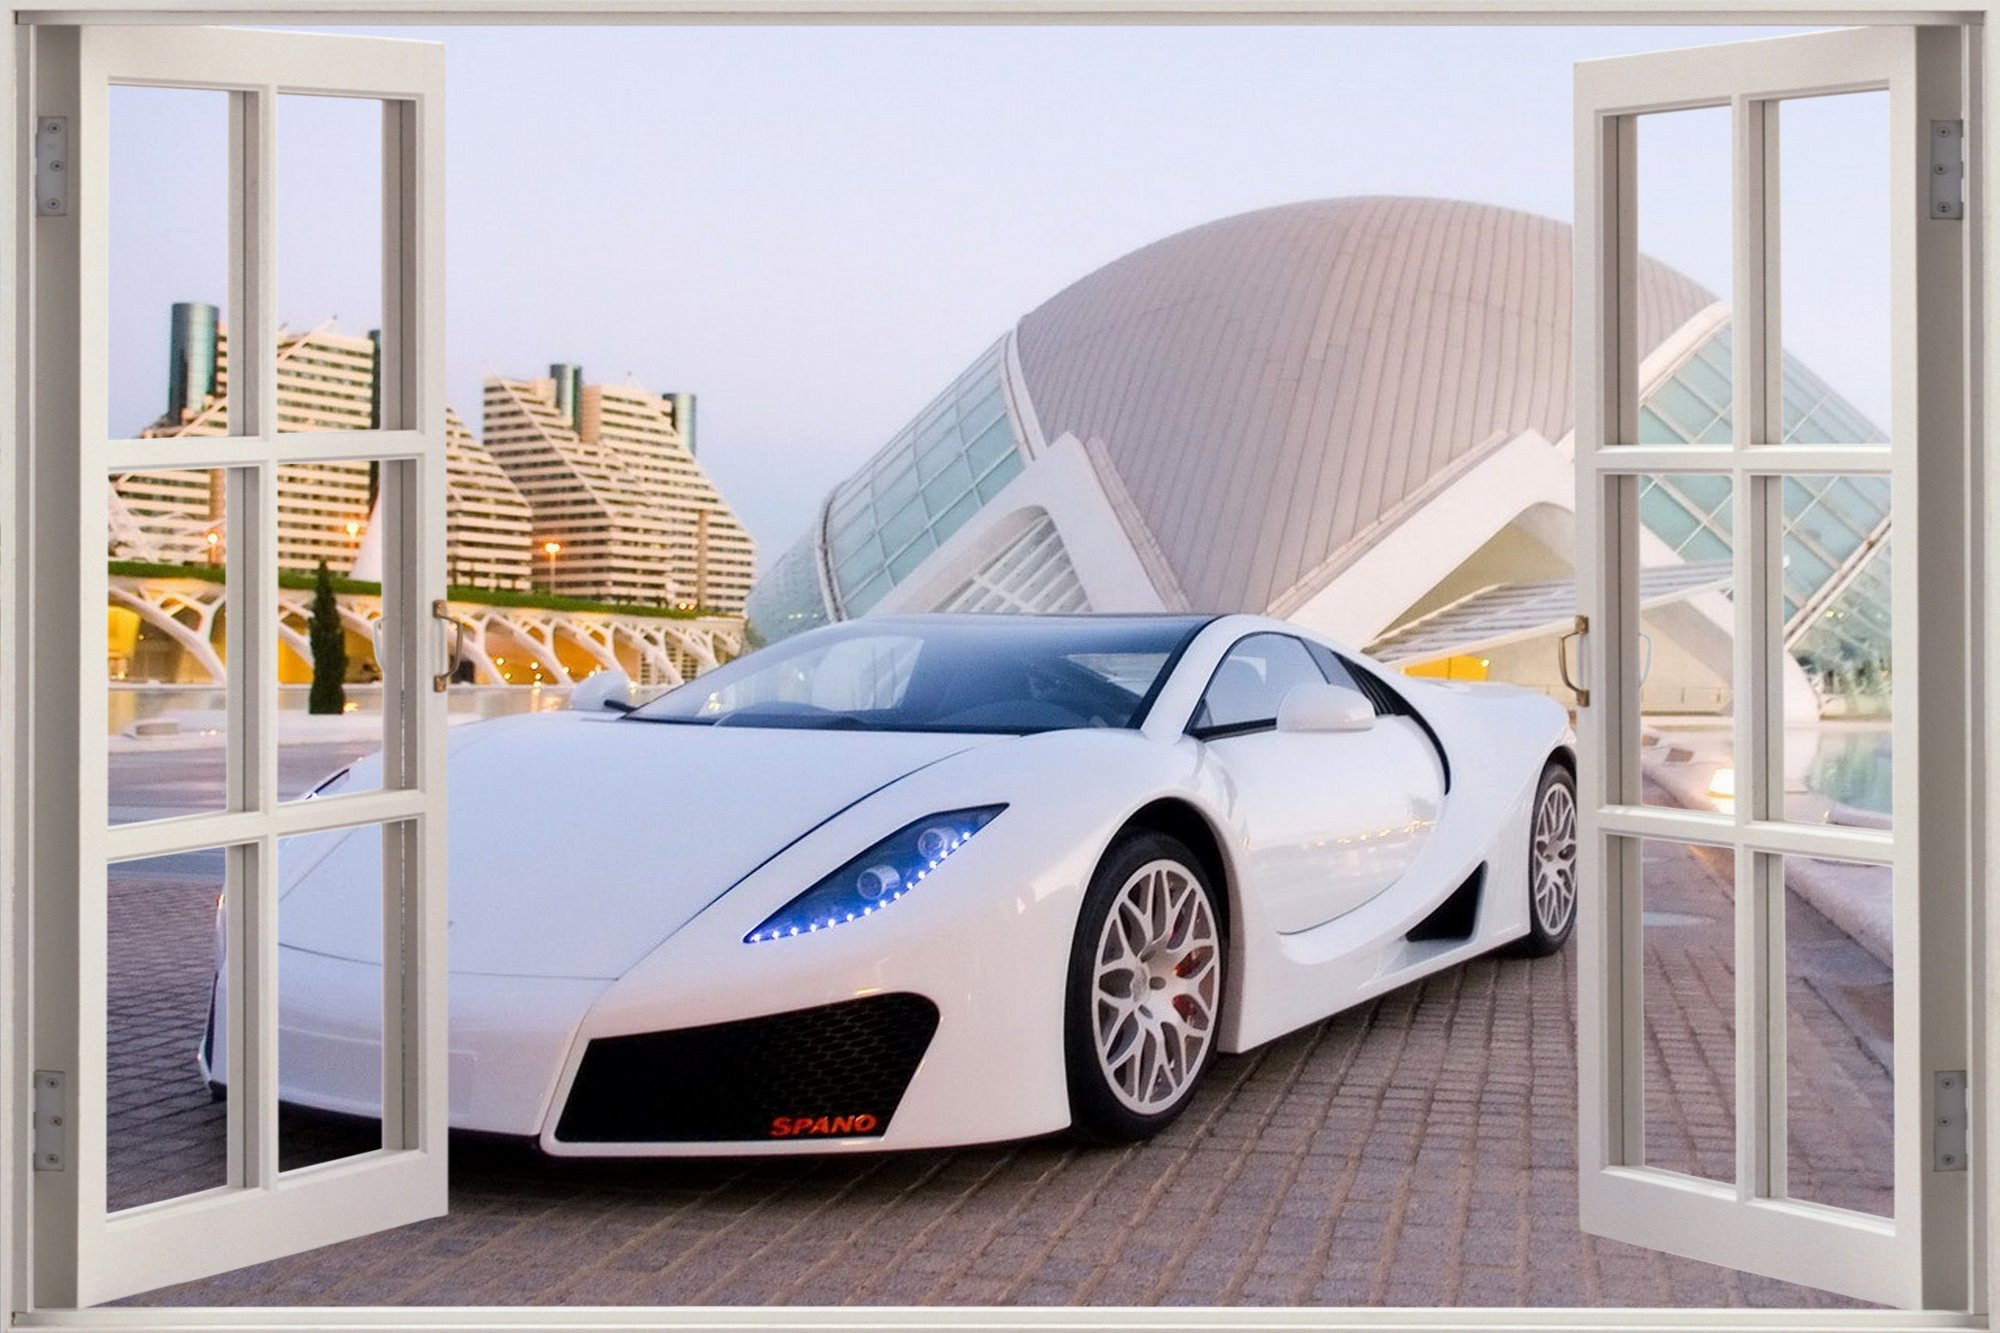 Free Download Huge 3d Window Exotic Sports Car View Wall Stickers Film Mural Decal 2000x1333 For Your Desktop Mobile Tablet Explore 50 3d Wallpaper Murals For Sale 3d Bedroom